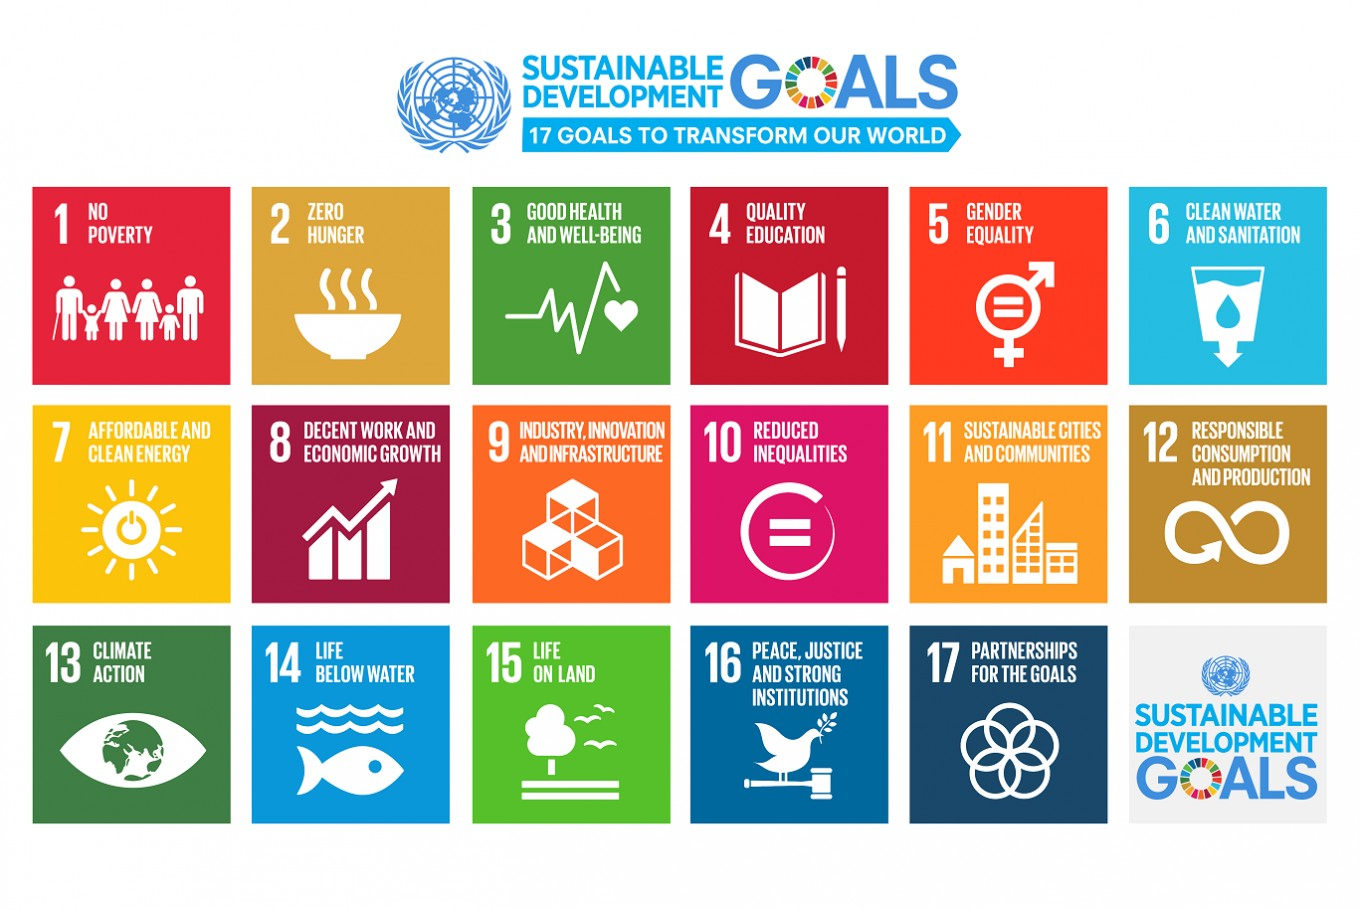 More blended financing needed to achieve sustainable development goals